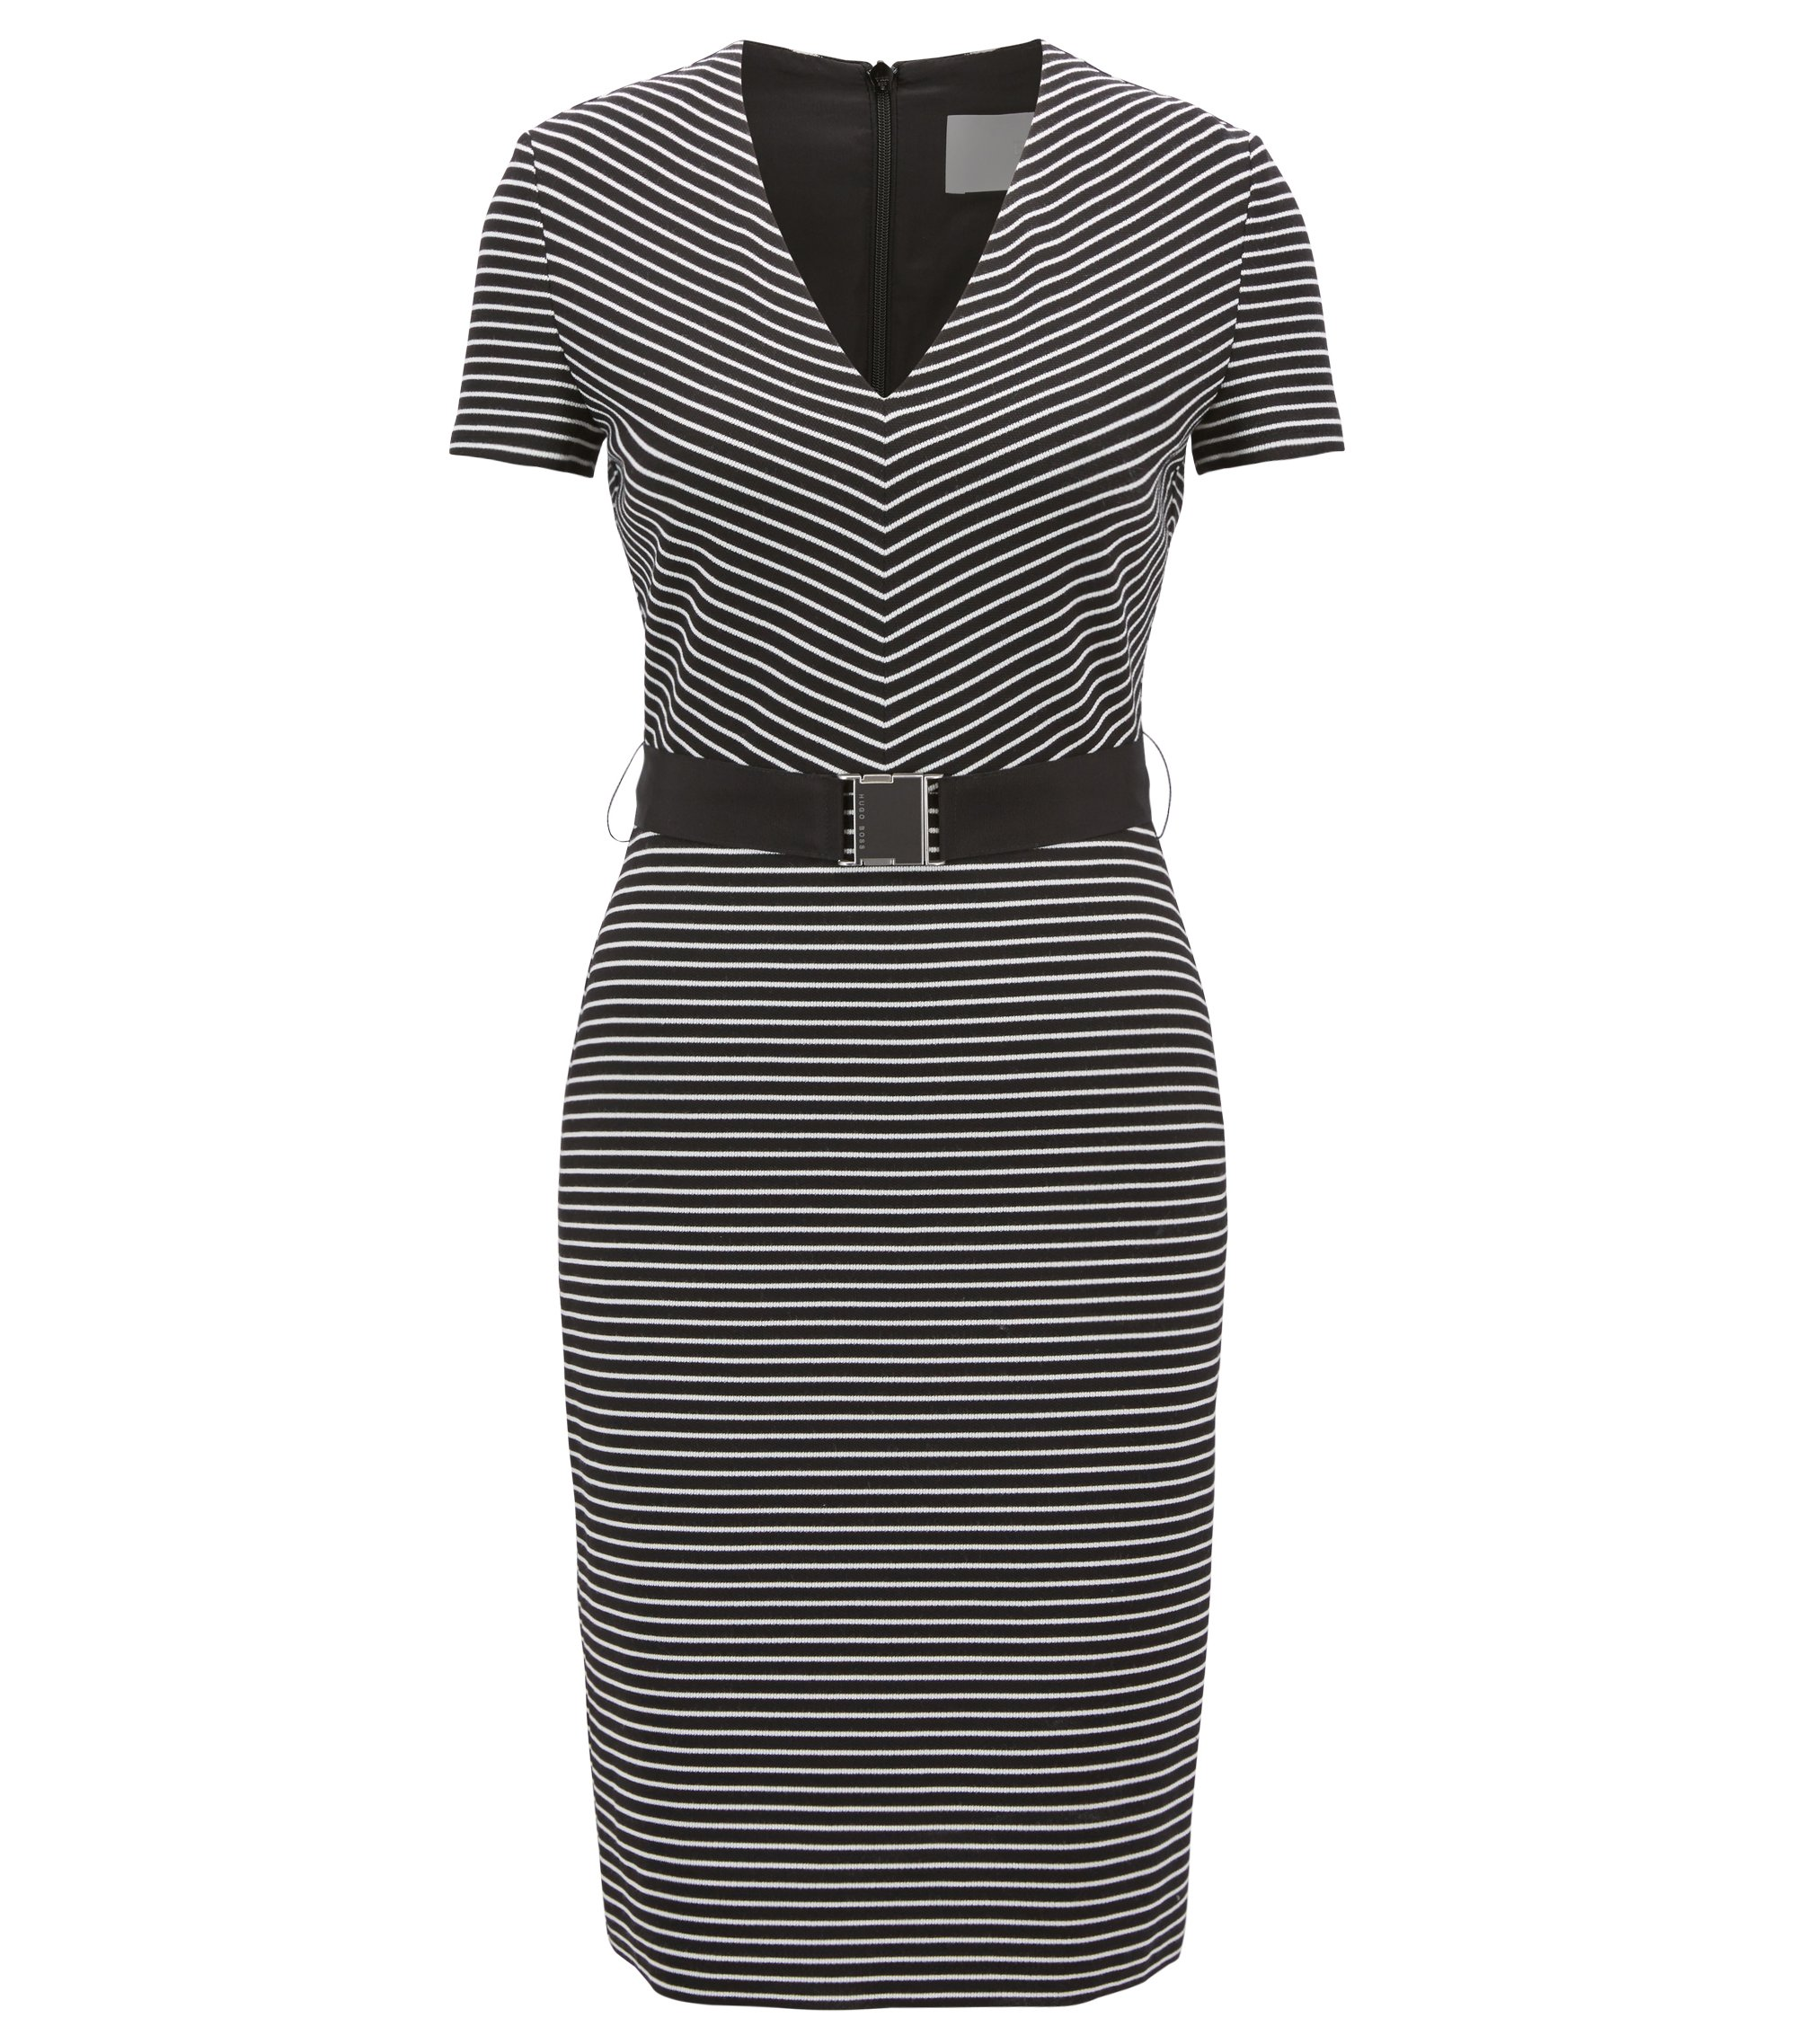 V-neck striped dress in a cotton blend, Patterned